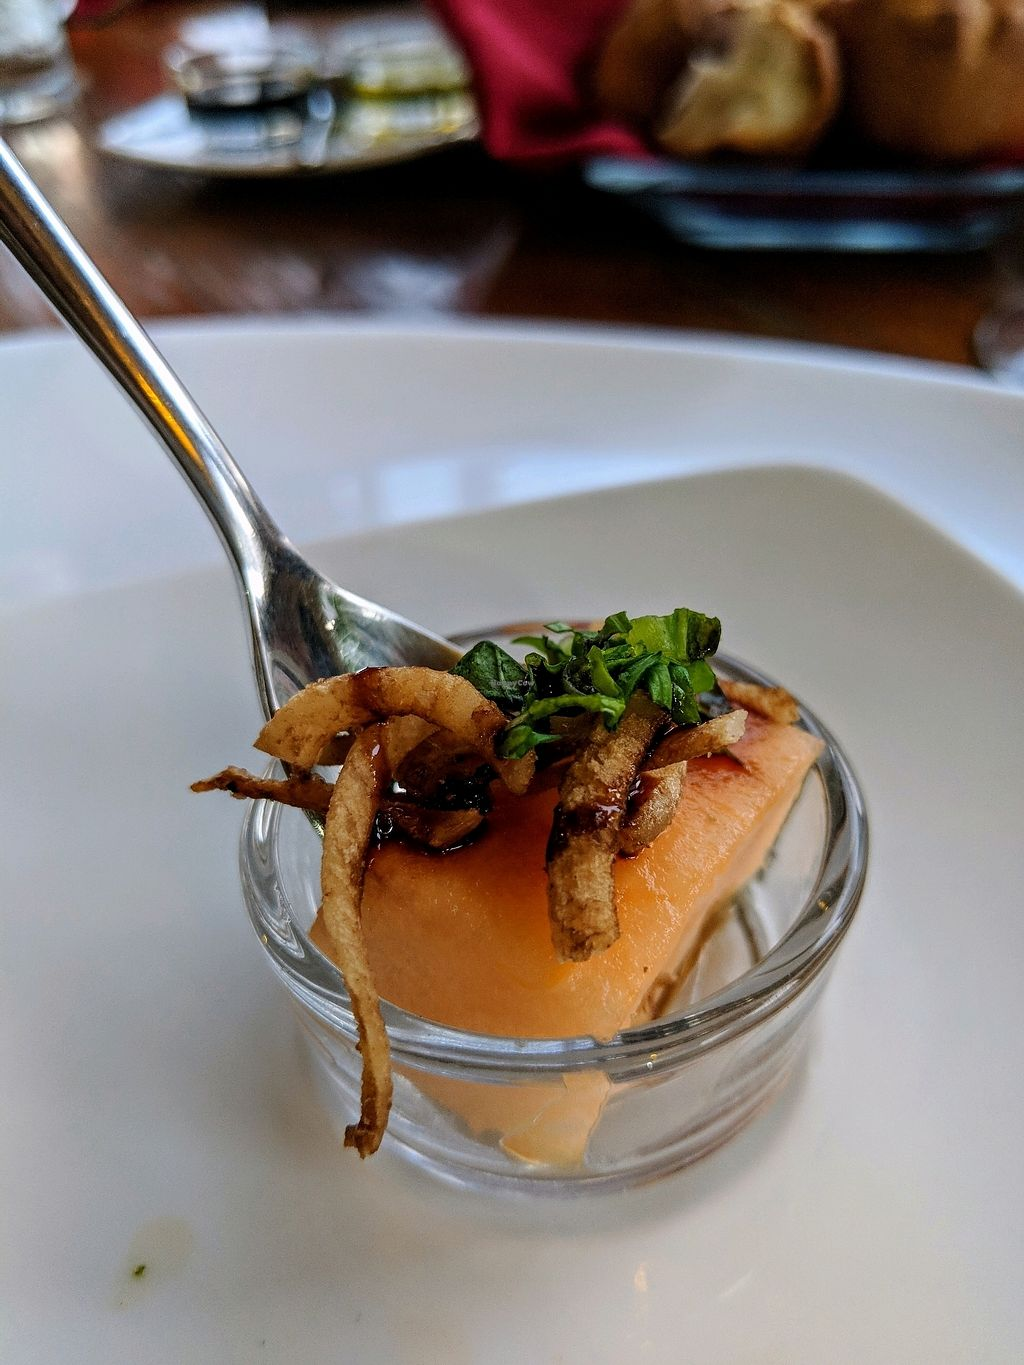 """Photo of Mito   by <a href=""""/members/profile/elenacz"""">elenacz</a> <br/>Amuse Bouche (cantelope with coconut bacon) <br/> April 12, 2018  - <a href='/contact/abuse/image/67741/384305'>Report</a>"""